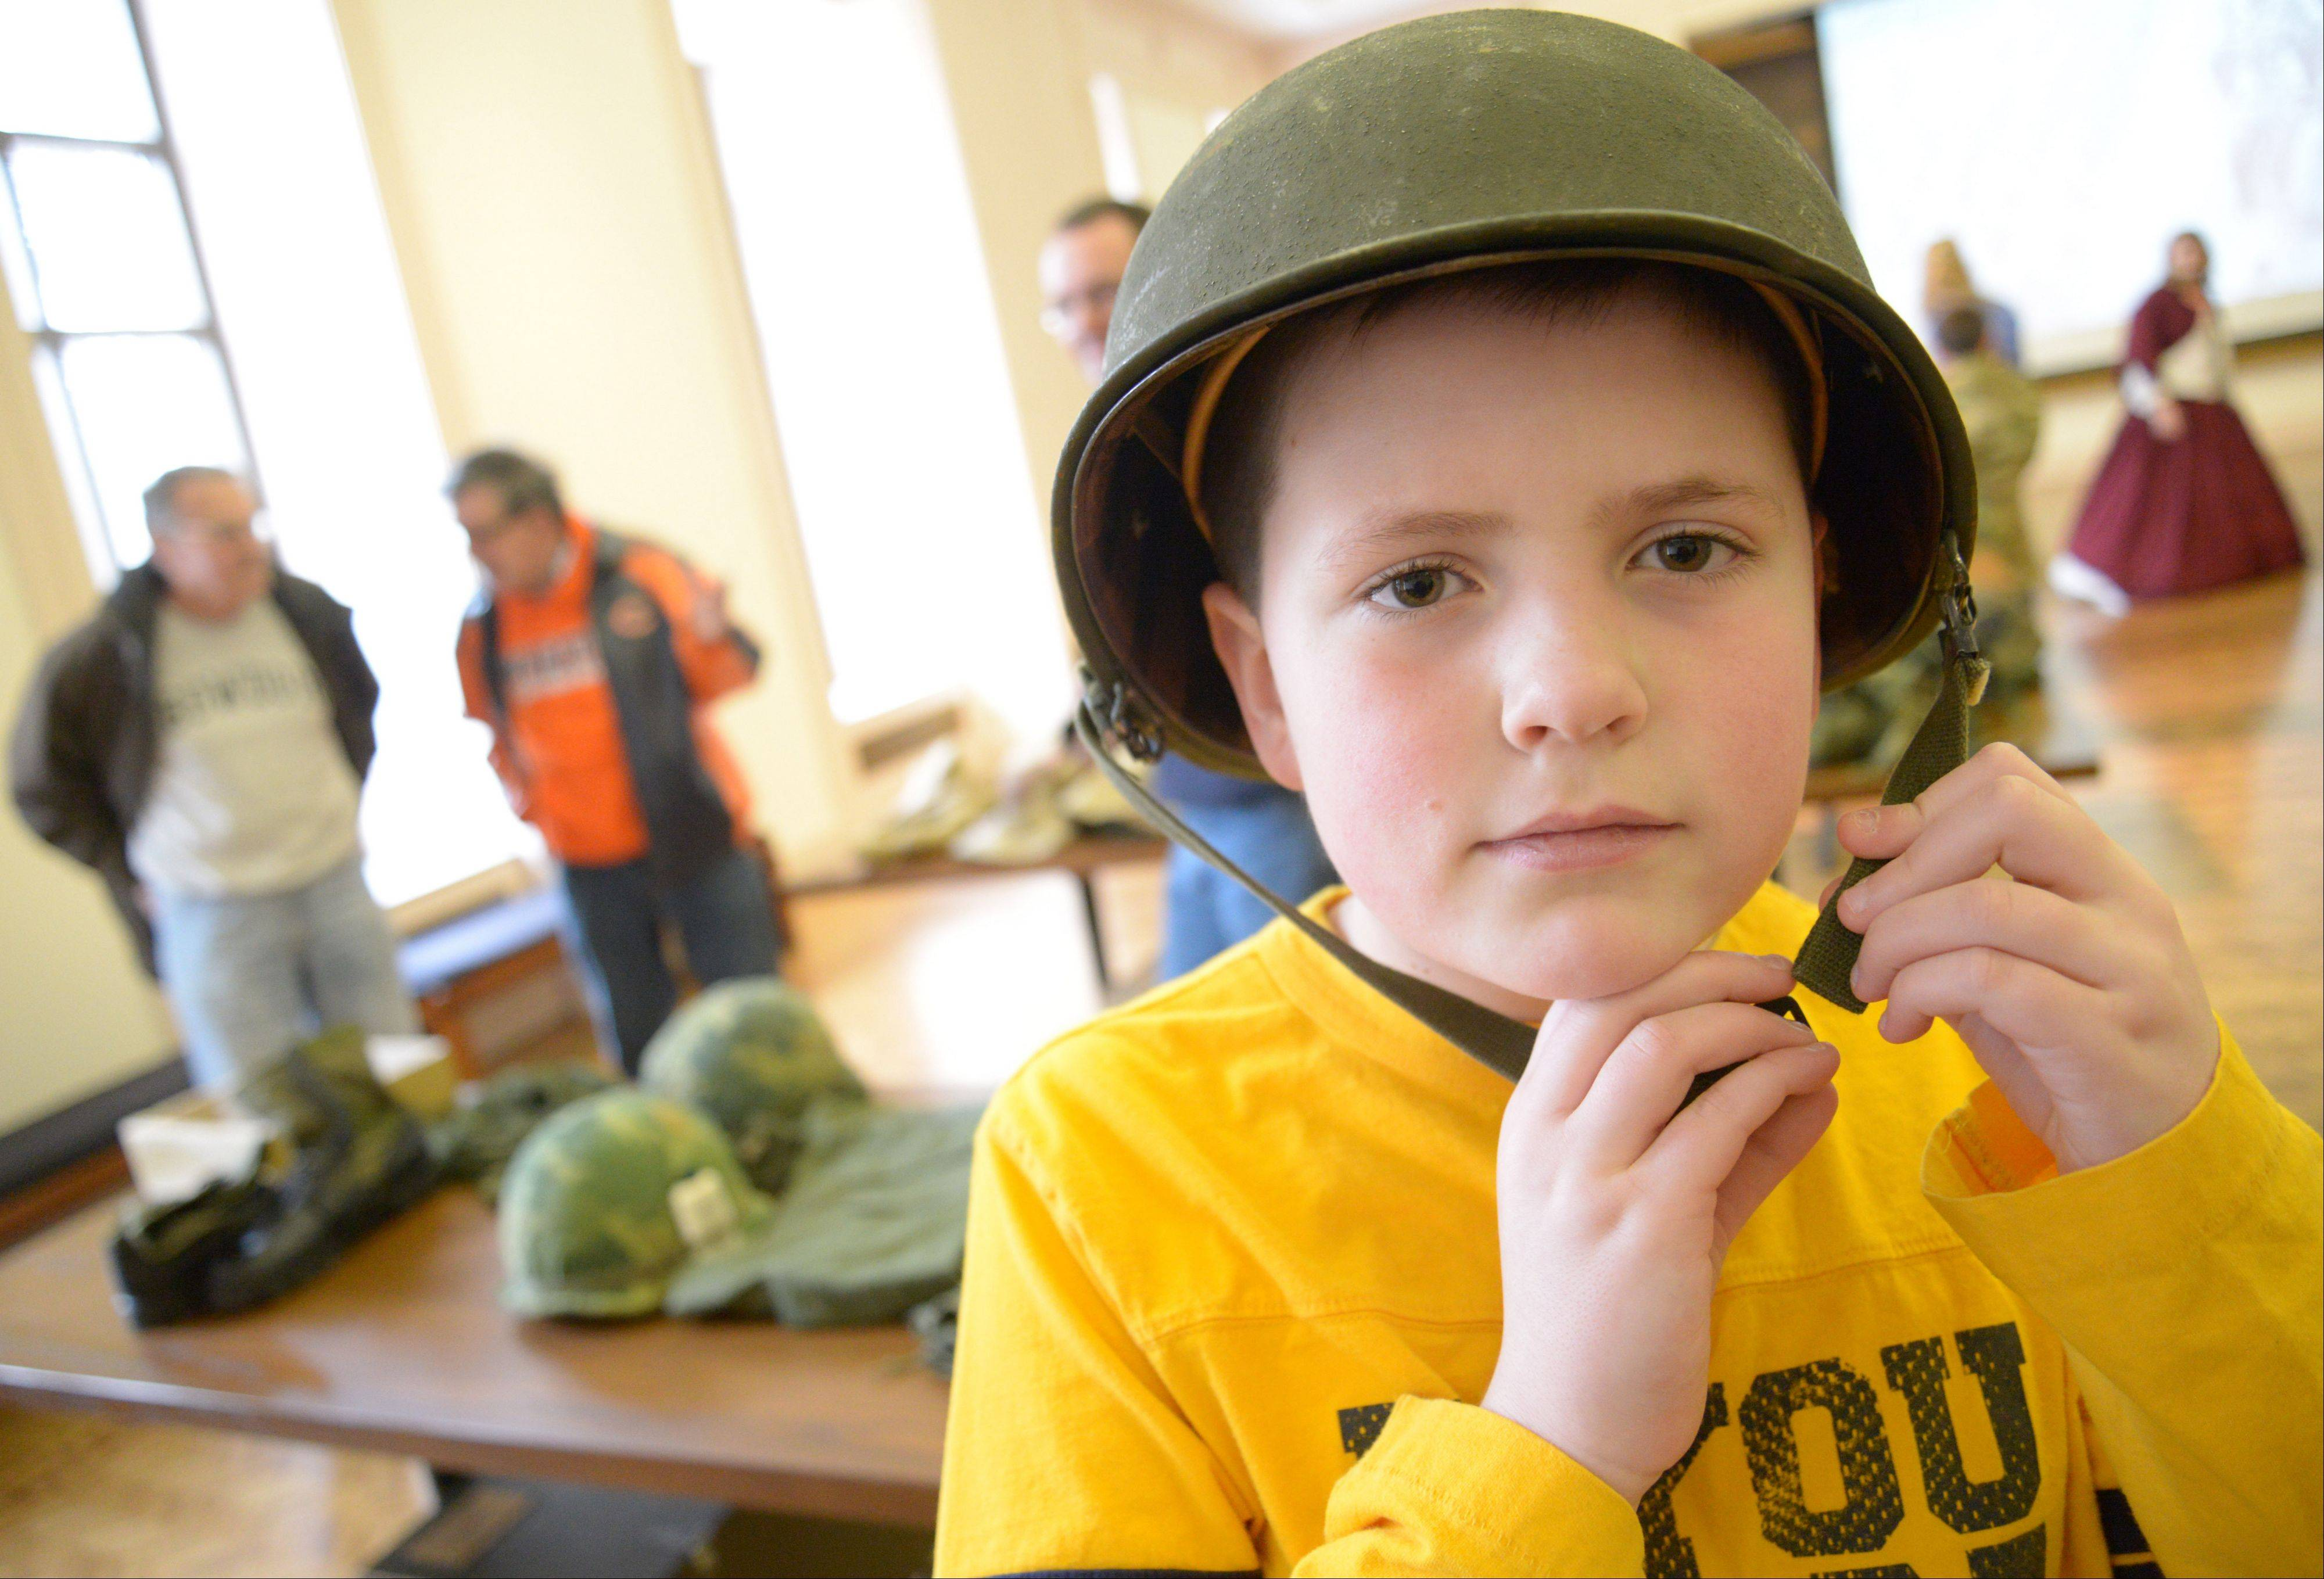 Sean Burke, 9, of Chicago, tries on a World War II-era helmet during the open house Saturday at the First Division Museum at Cantigny Park in Wheaton.